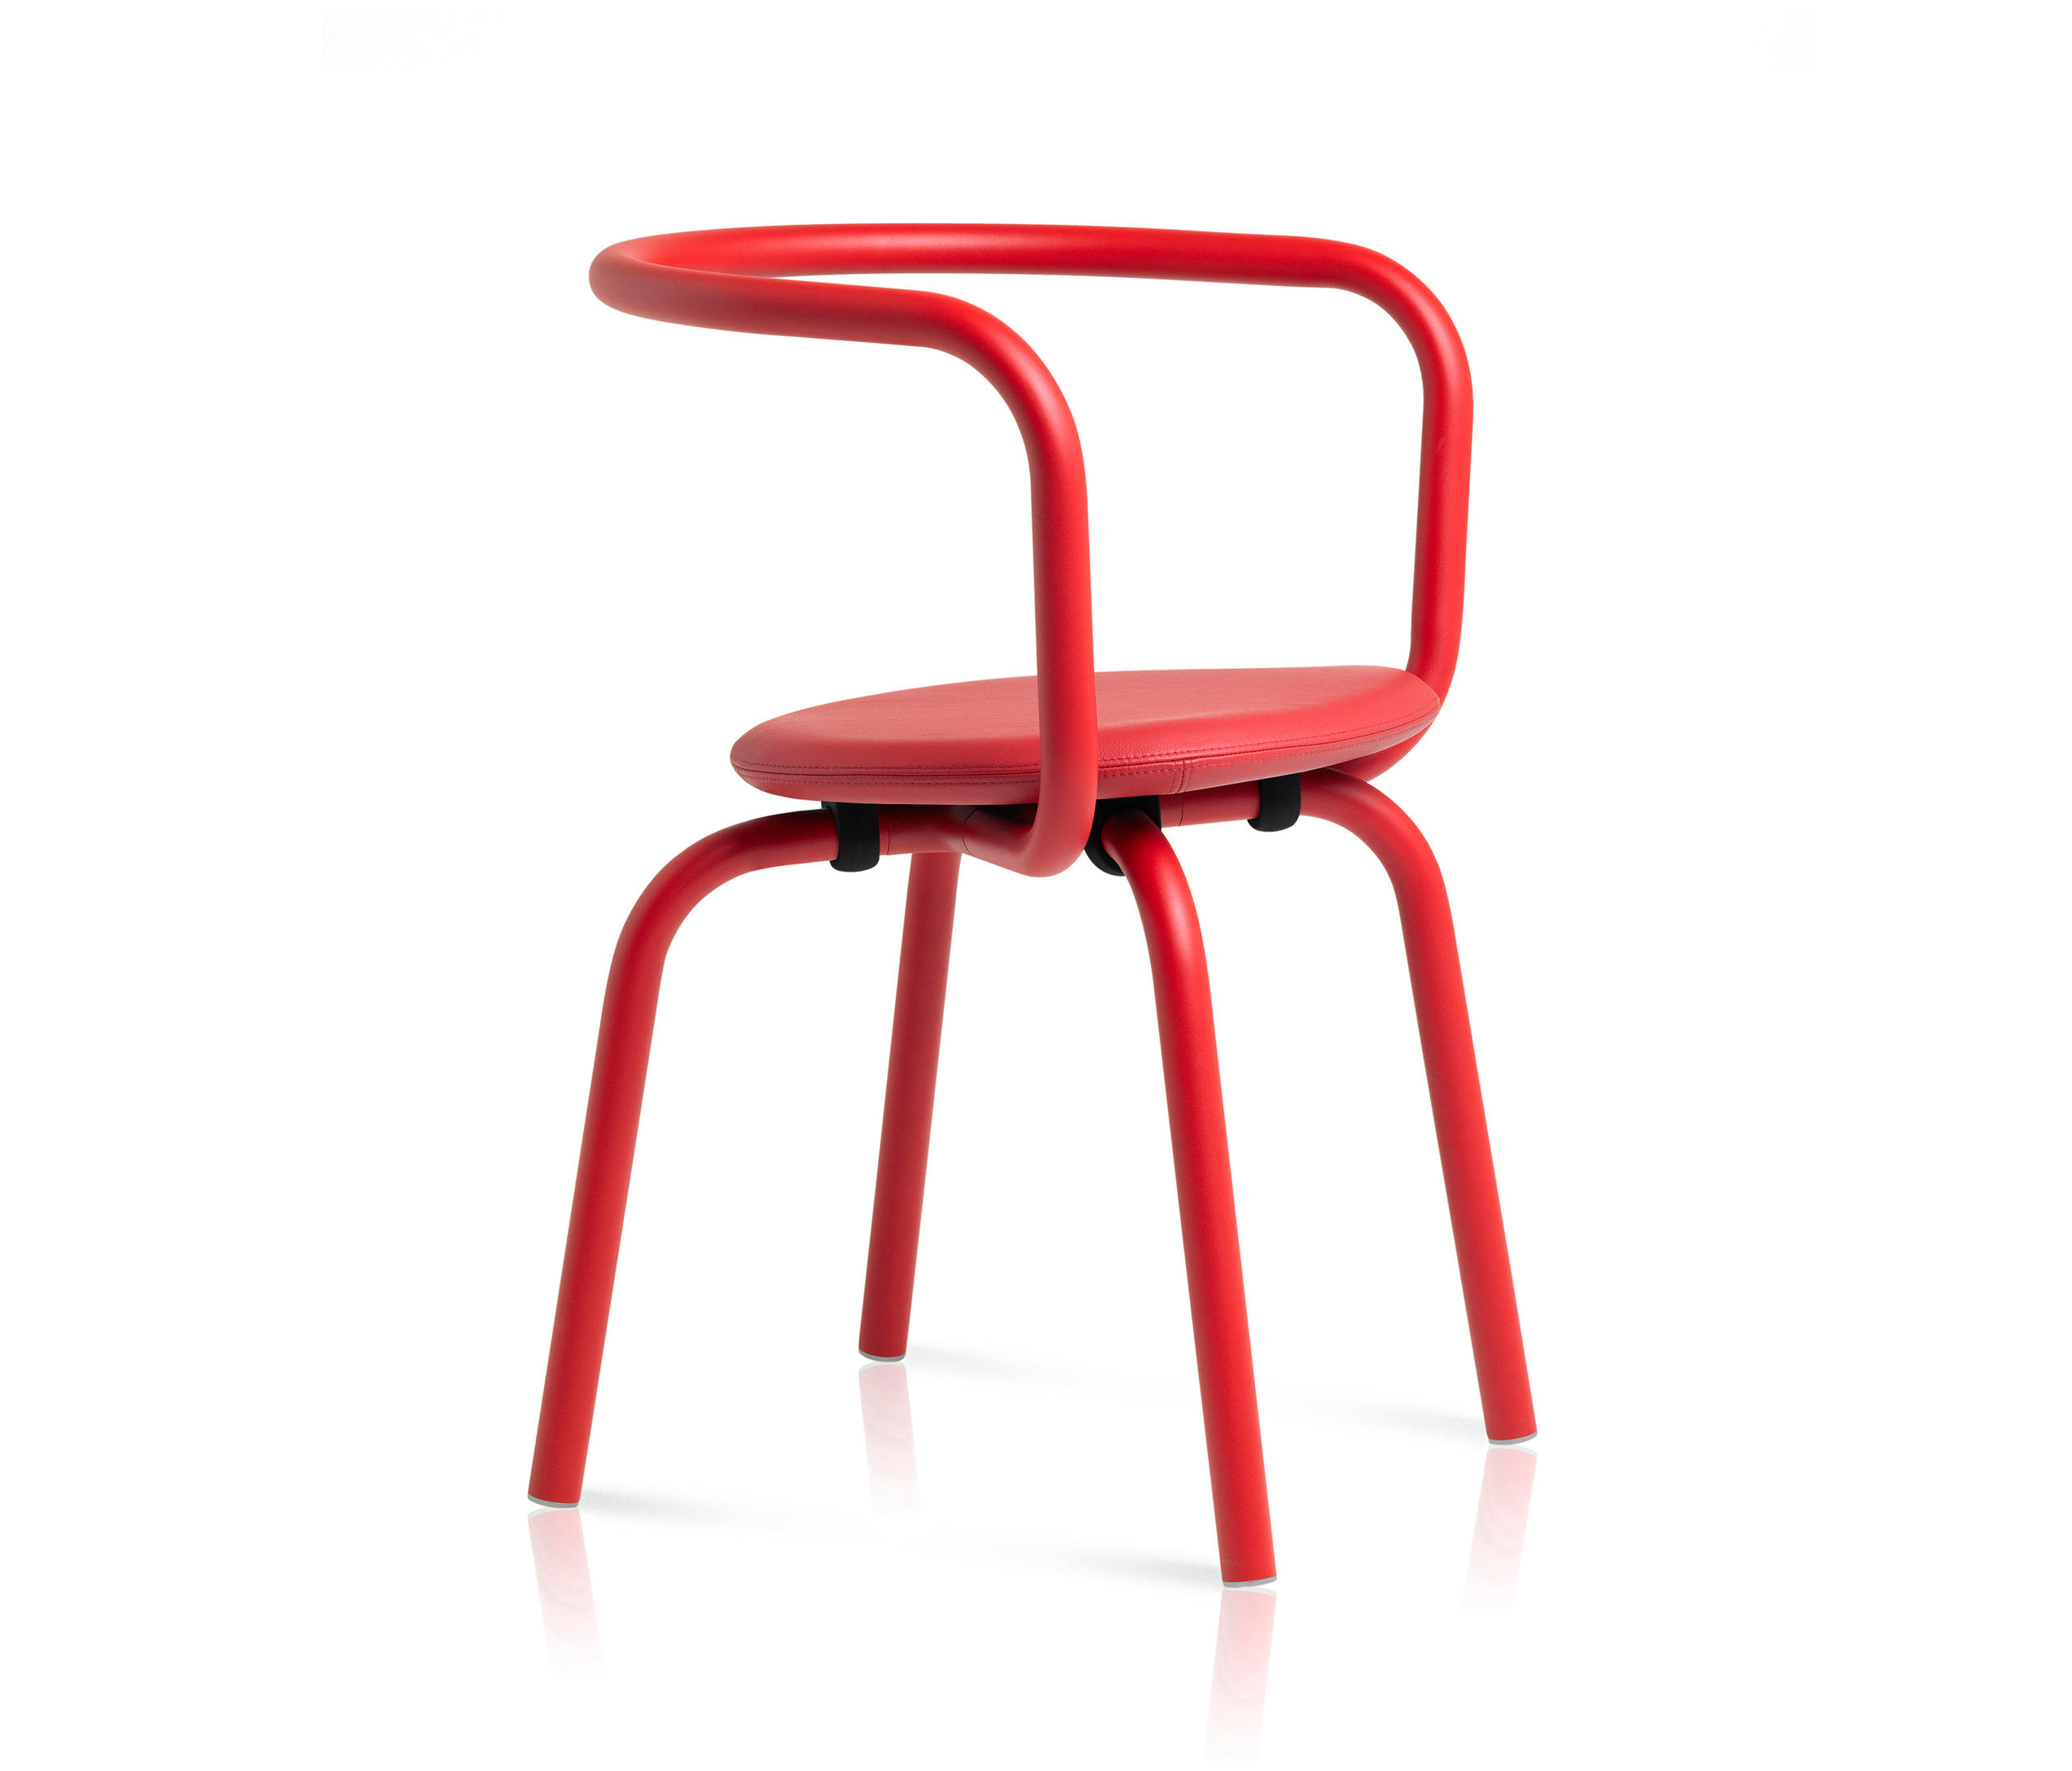 parrish chair  visitors chairs  side chairs from emeco  architonic - parrish chair by emeco  visitors chairs  side chairs